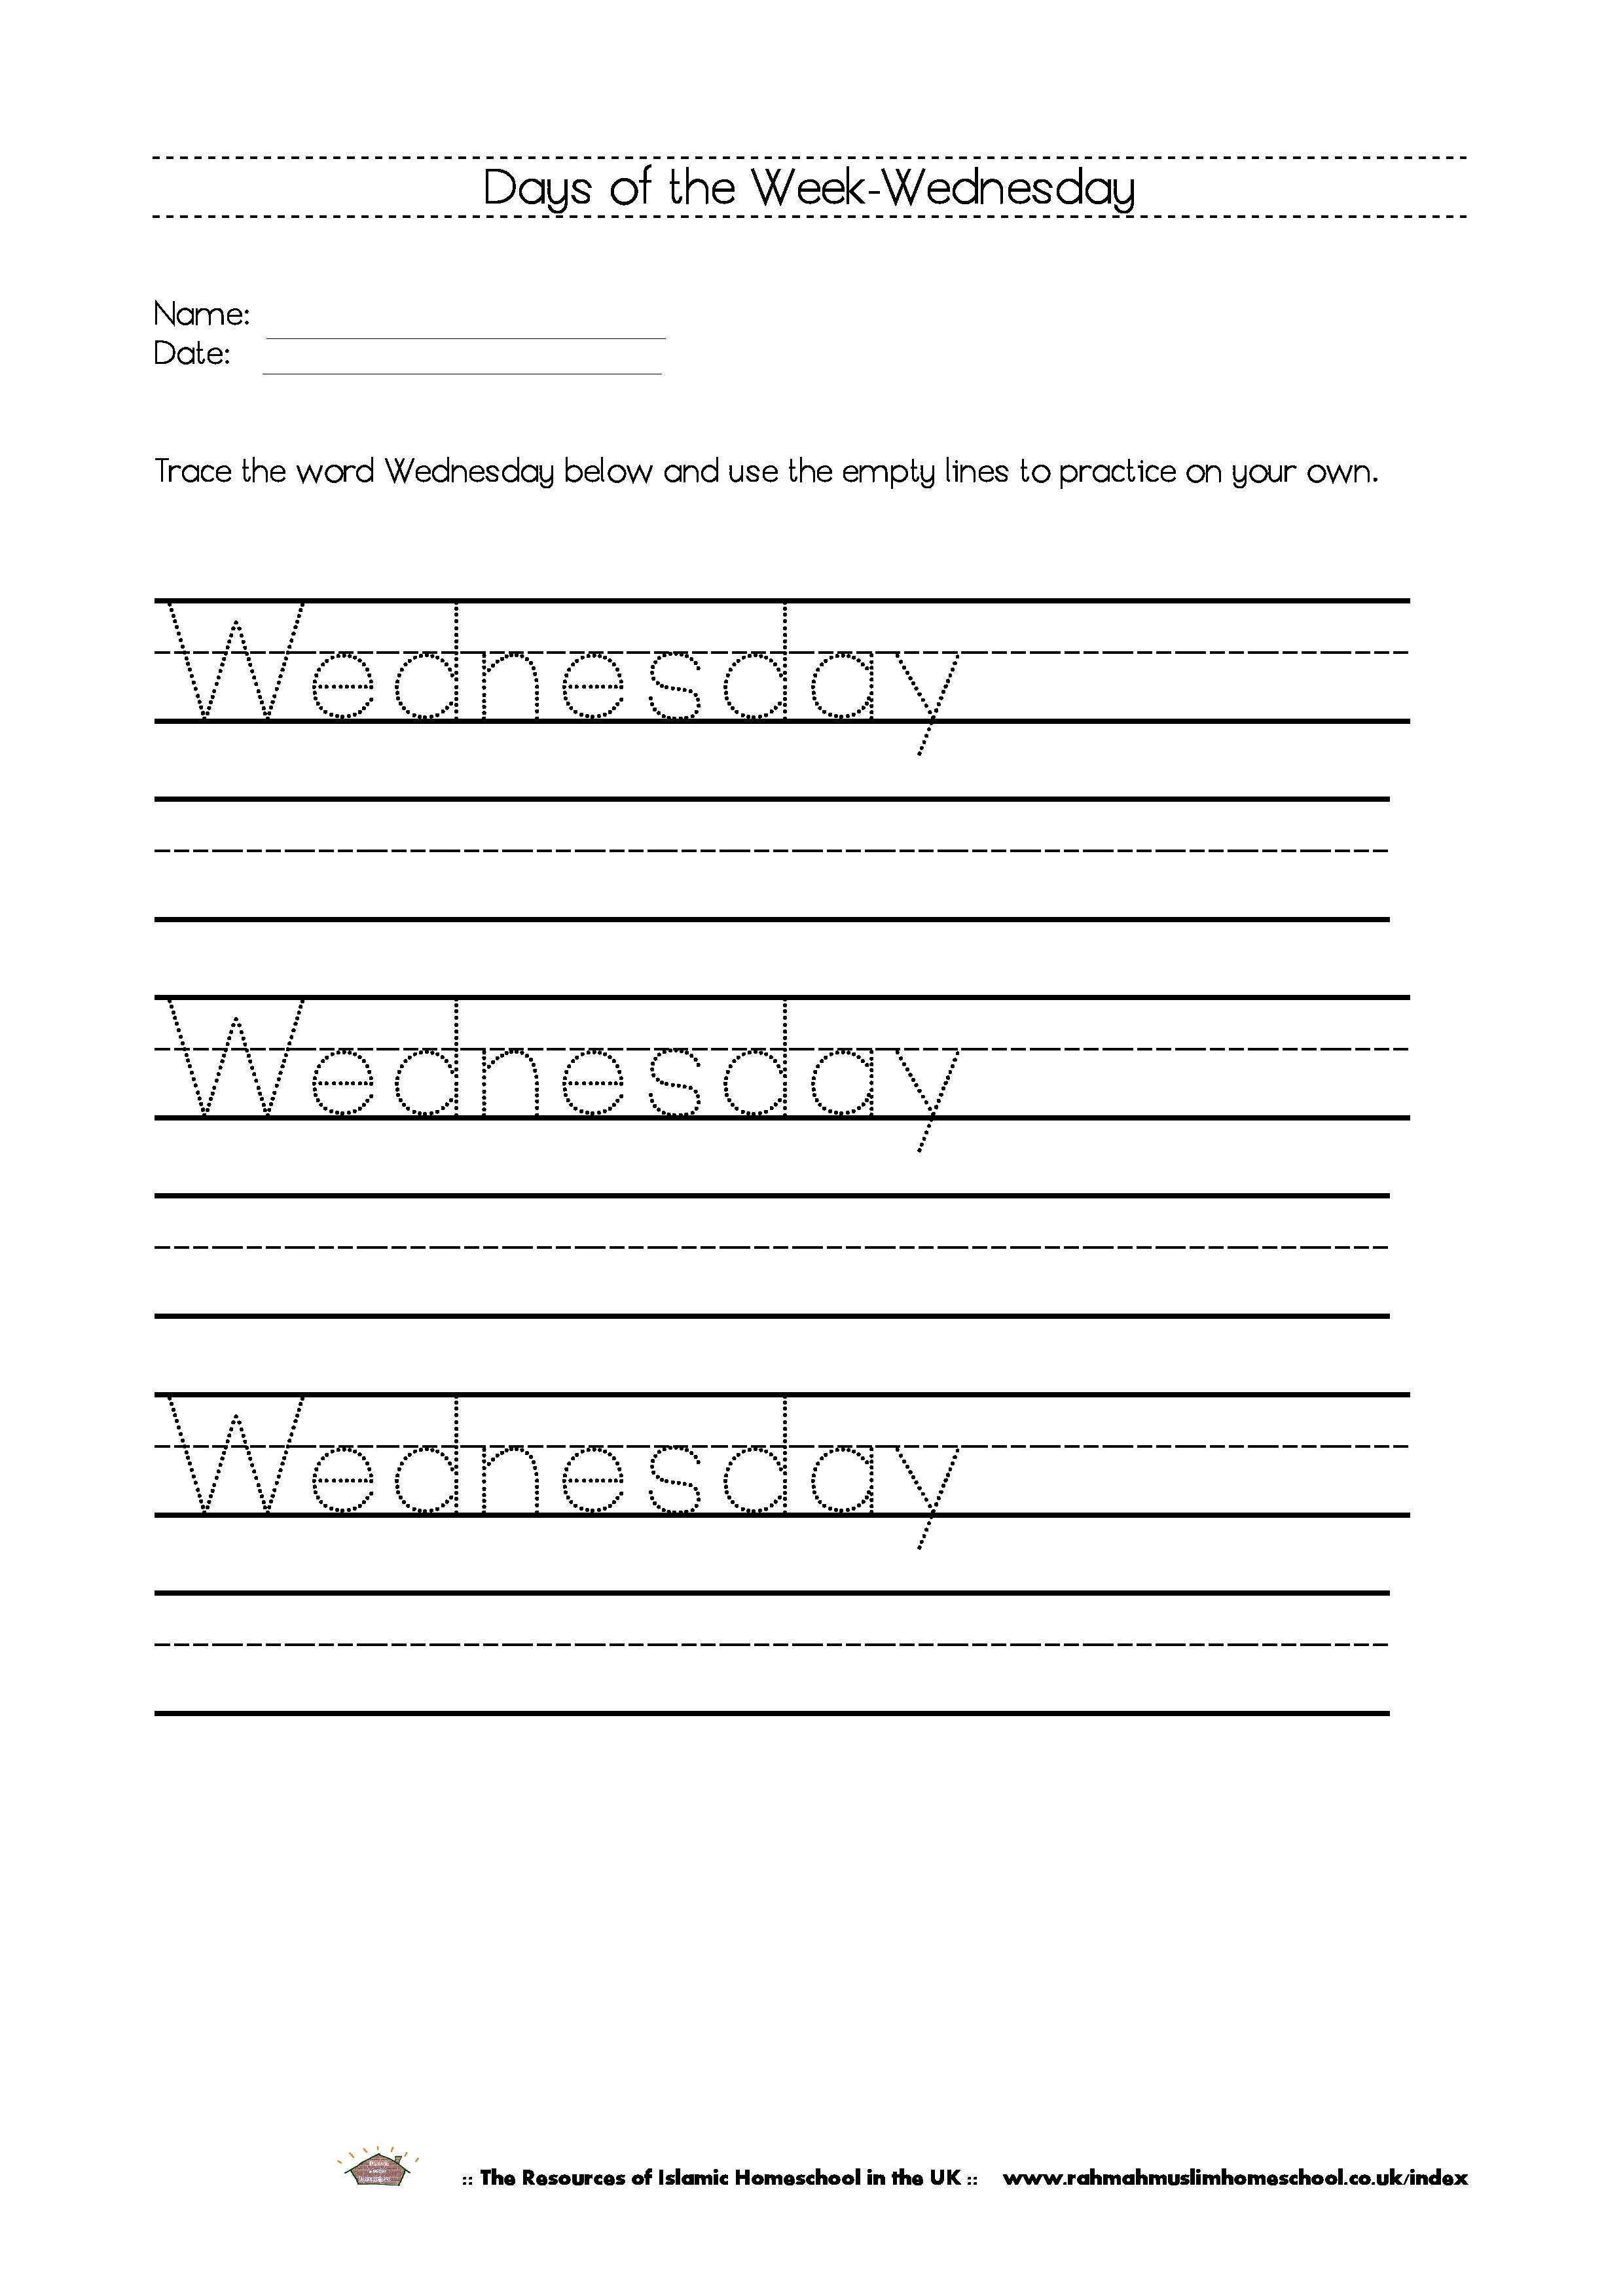 Free Printable Days Of The Week Workbook And Poster